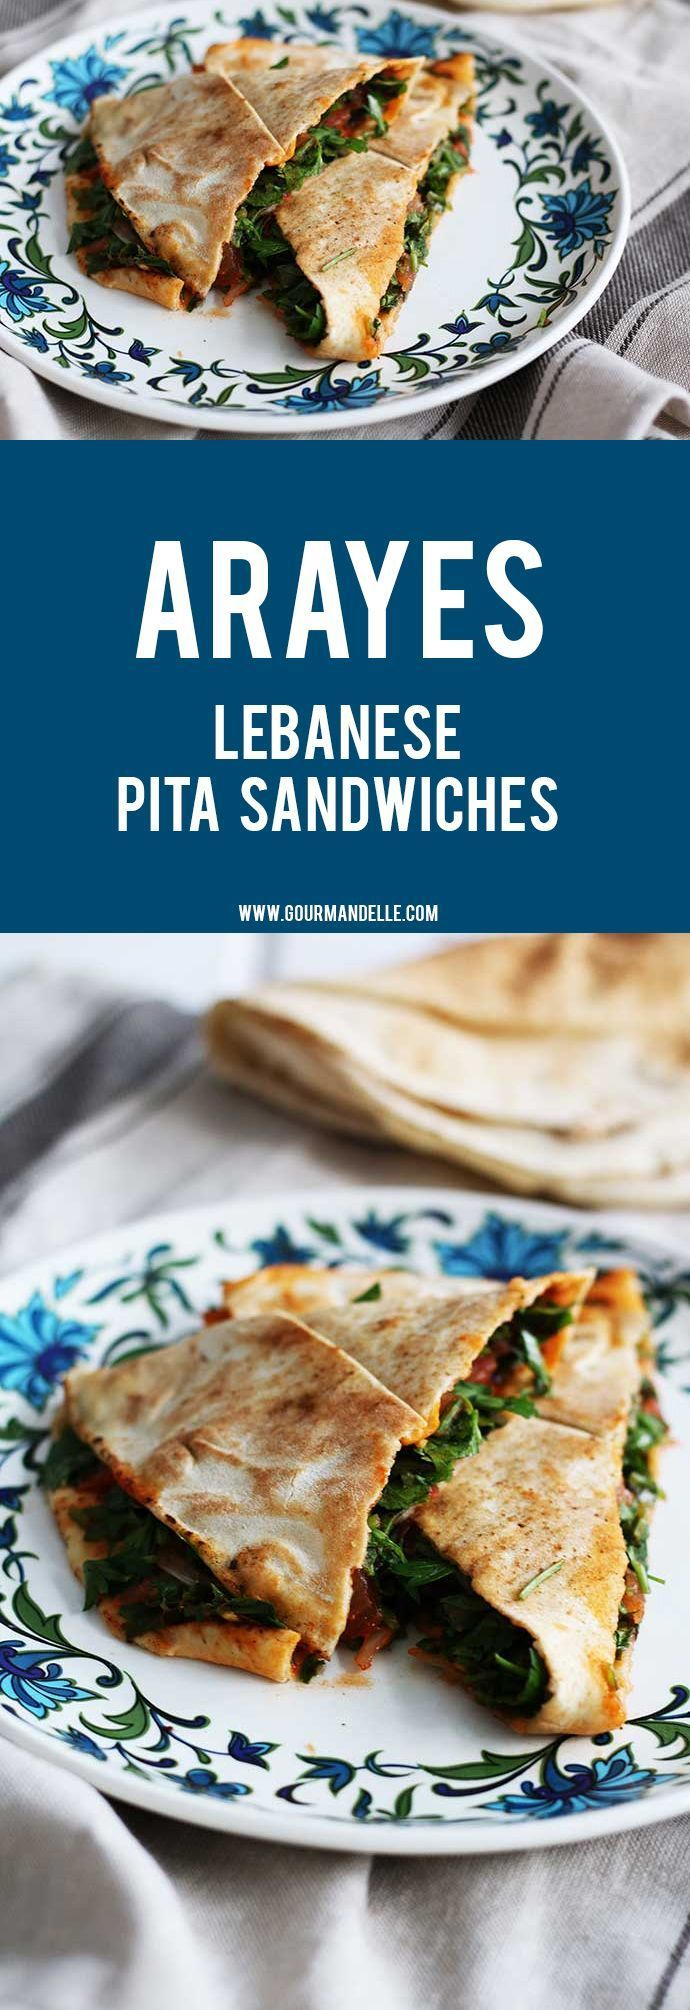 Arayes is a popular Middle Eastern recipe and it's basically grilled pita sandwiches with a delicious filling. Give it a try! #vegetarian #veganrecipes #sandwich